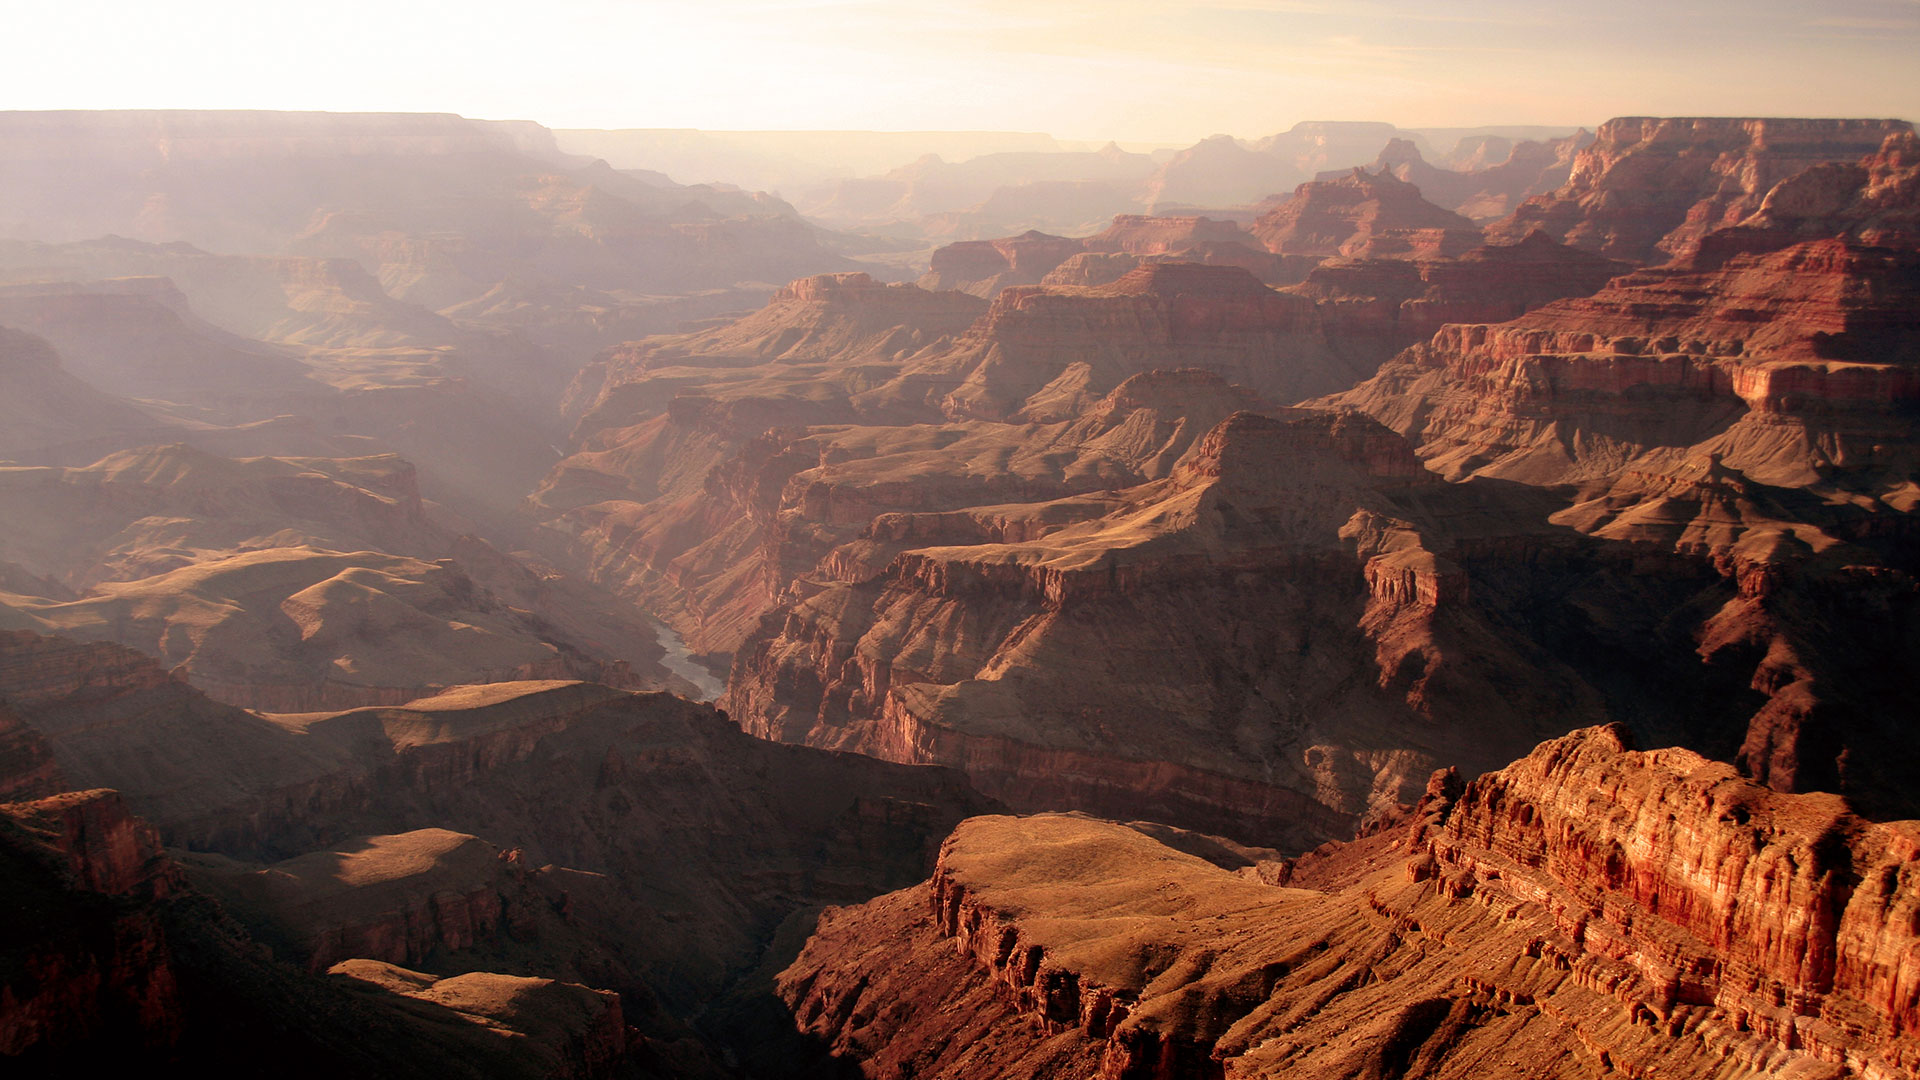 A scenic Grand Canyon vista lit by warm sunlight.